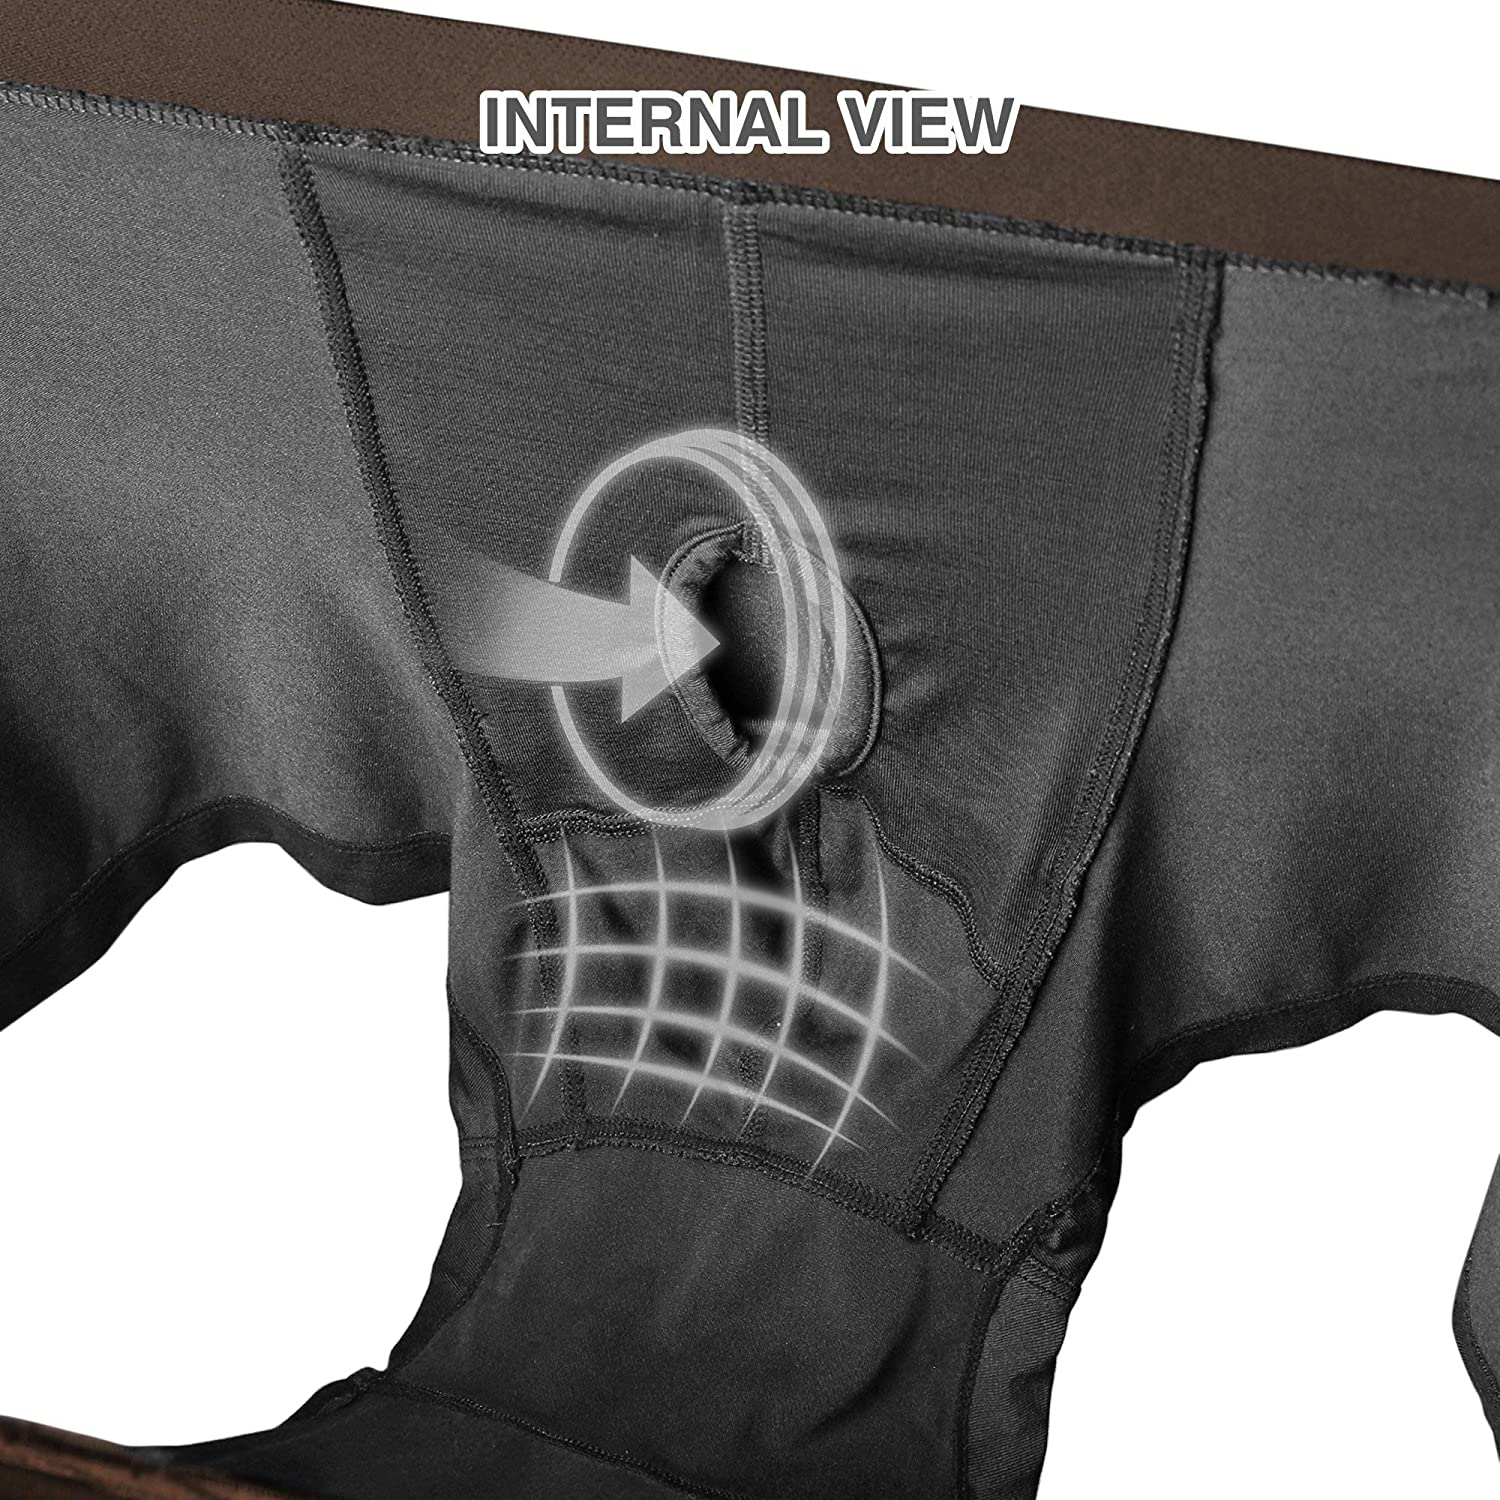 Separatec Mens Boxer Briefs with Separated Pouches Bamboo Rayon Underwear Breathable and Soft Trunks with Fly 3 Pack Fitted Undershorts